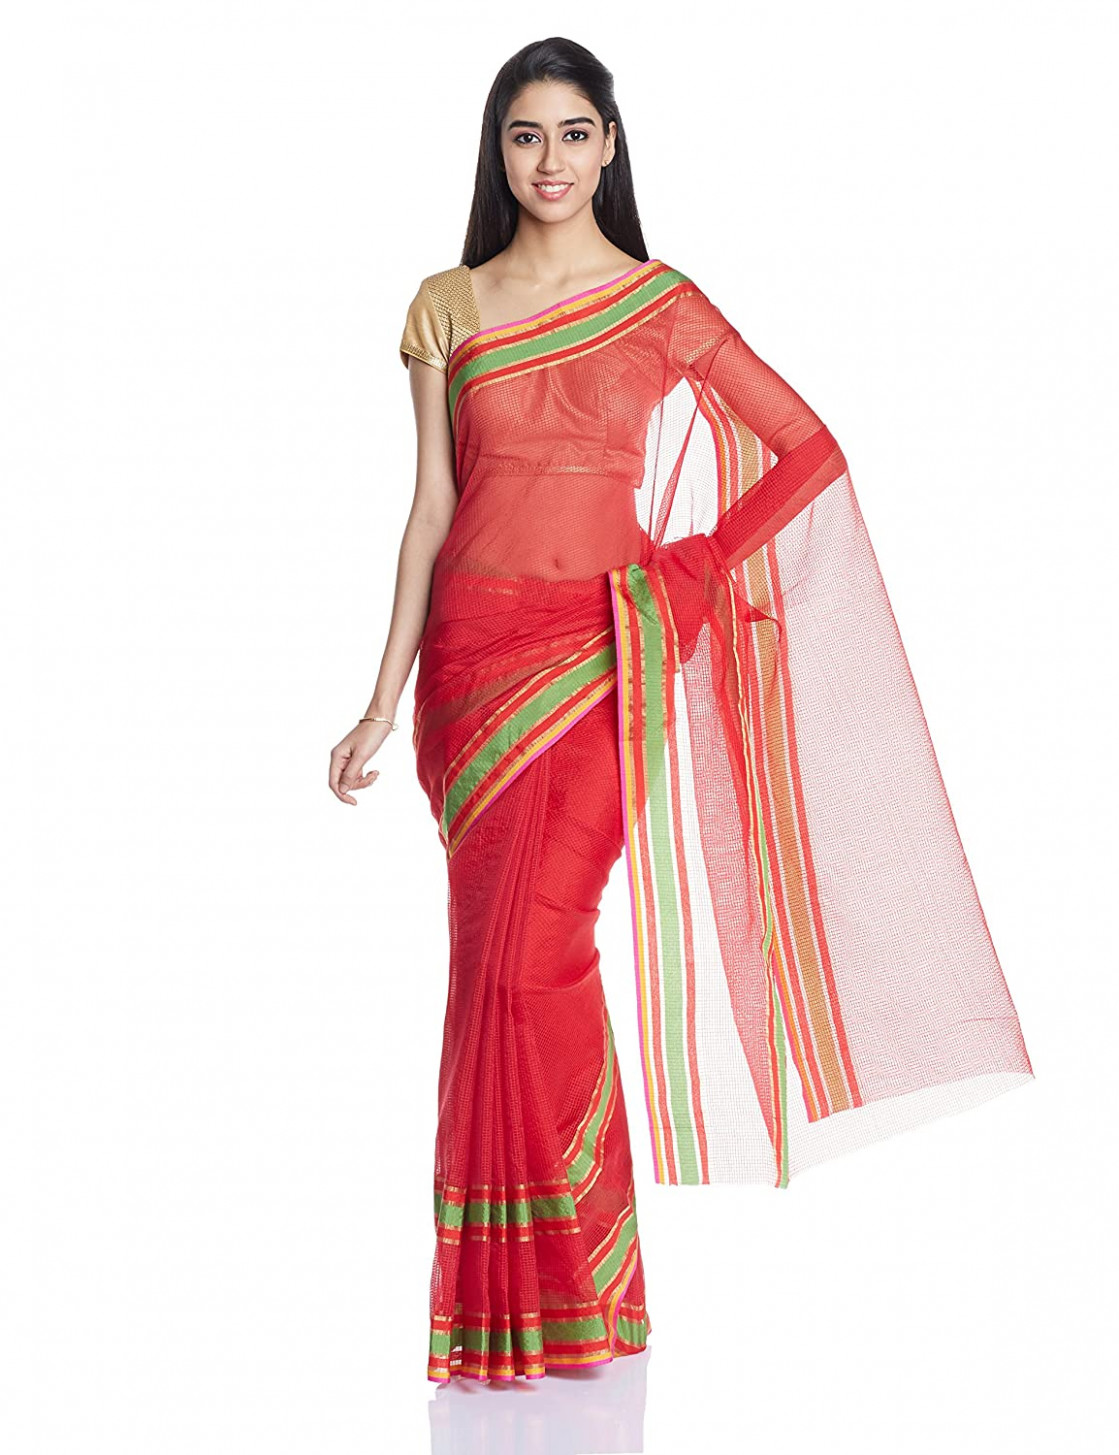 70% discount Boondh Net Saree with Blouse Piece @299 on